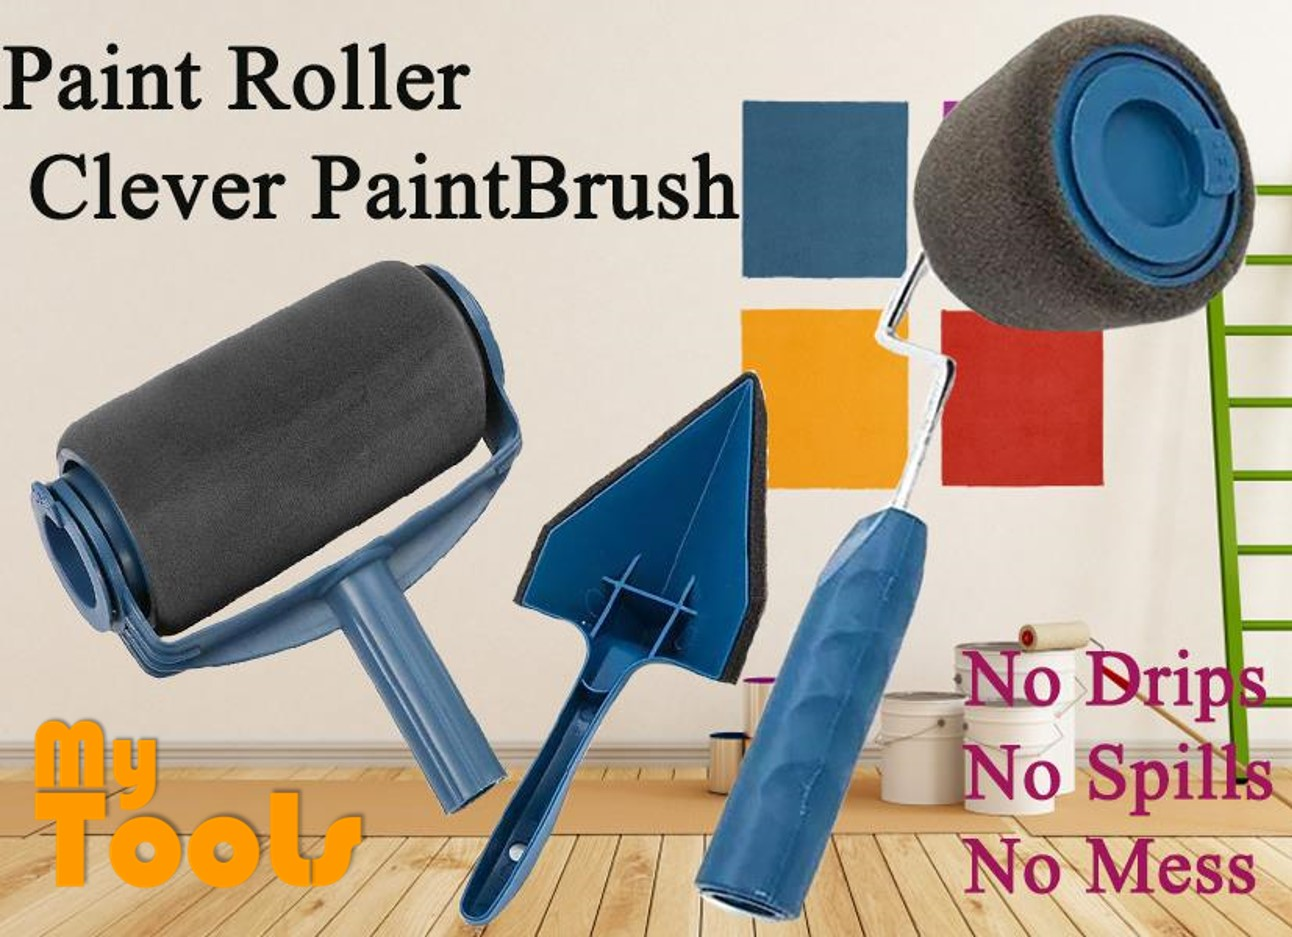 Mytools Paint Roller Clever Paintbrush Runner Pro Brush Set Flocked Edger Wall Painting Kit